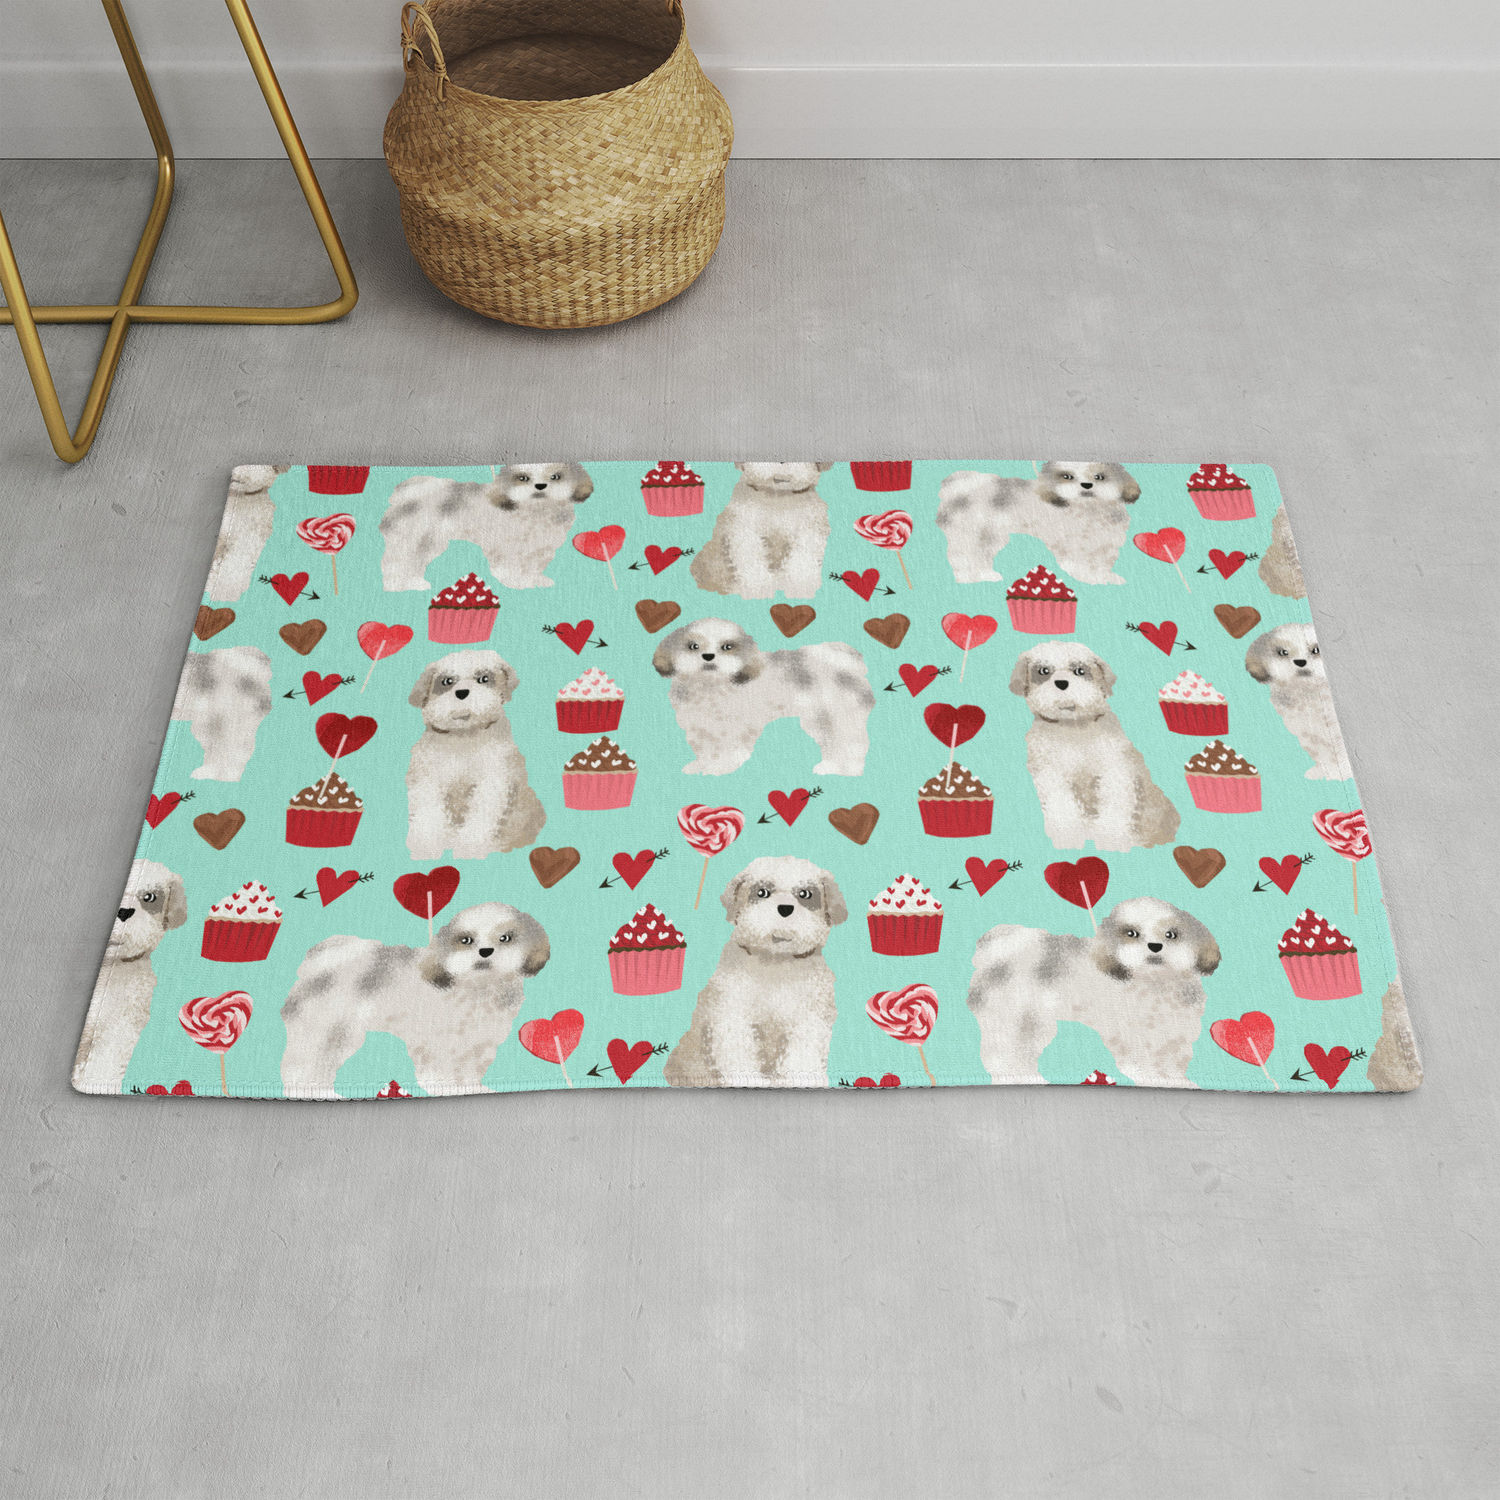 Shih Tzu Valentines Day Pattern For Dog Lover With Cute Shih Tzu Puppy Love By Pet Friendly Rug By Petfriendly Society6